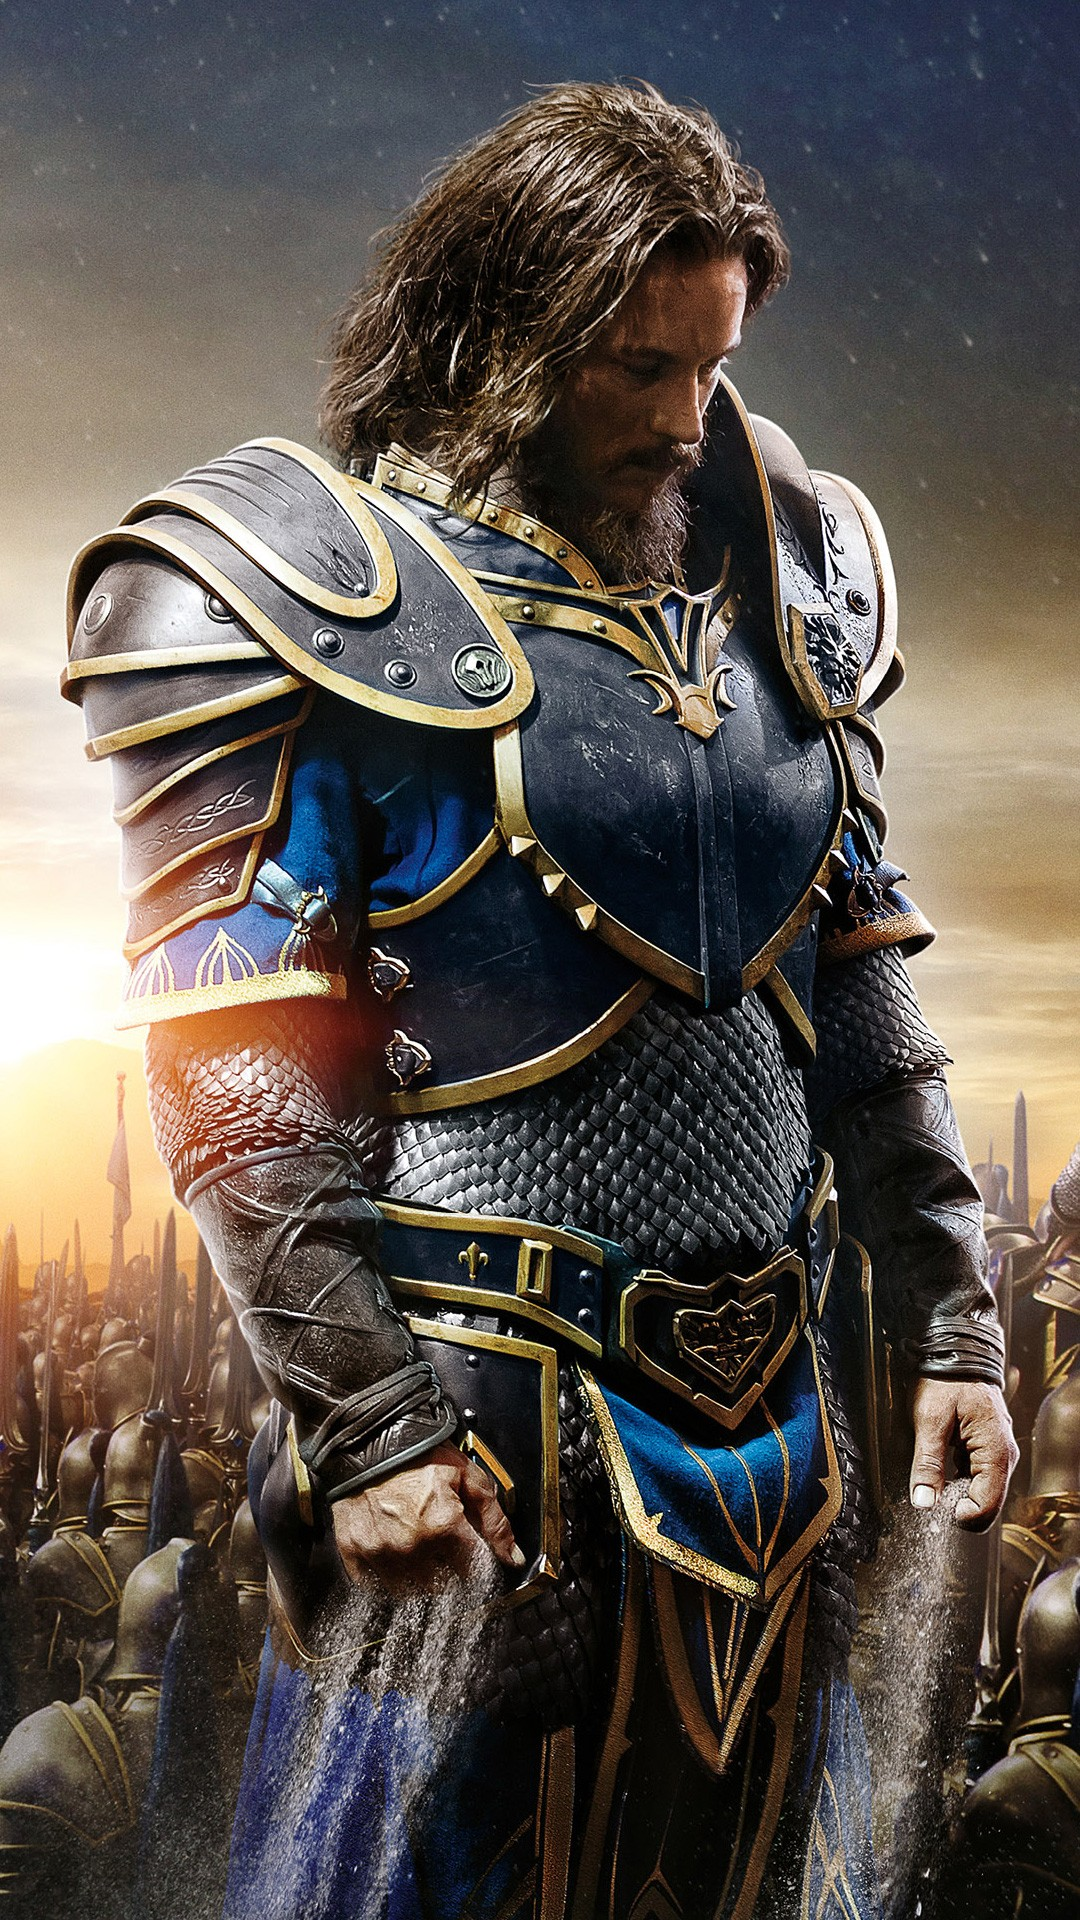 Samsung Galaxy 3d Wallpapers Free Download Anduin Lothar Warcraft Movie Wallpapers Hd Wallpapers